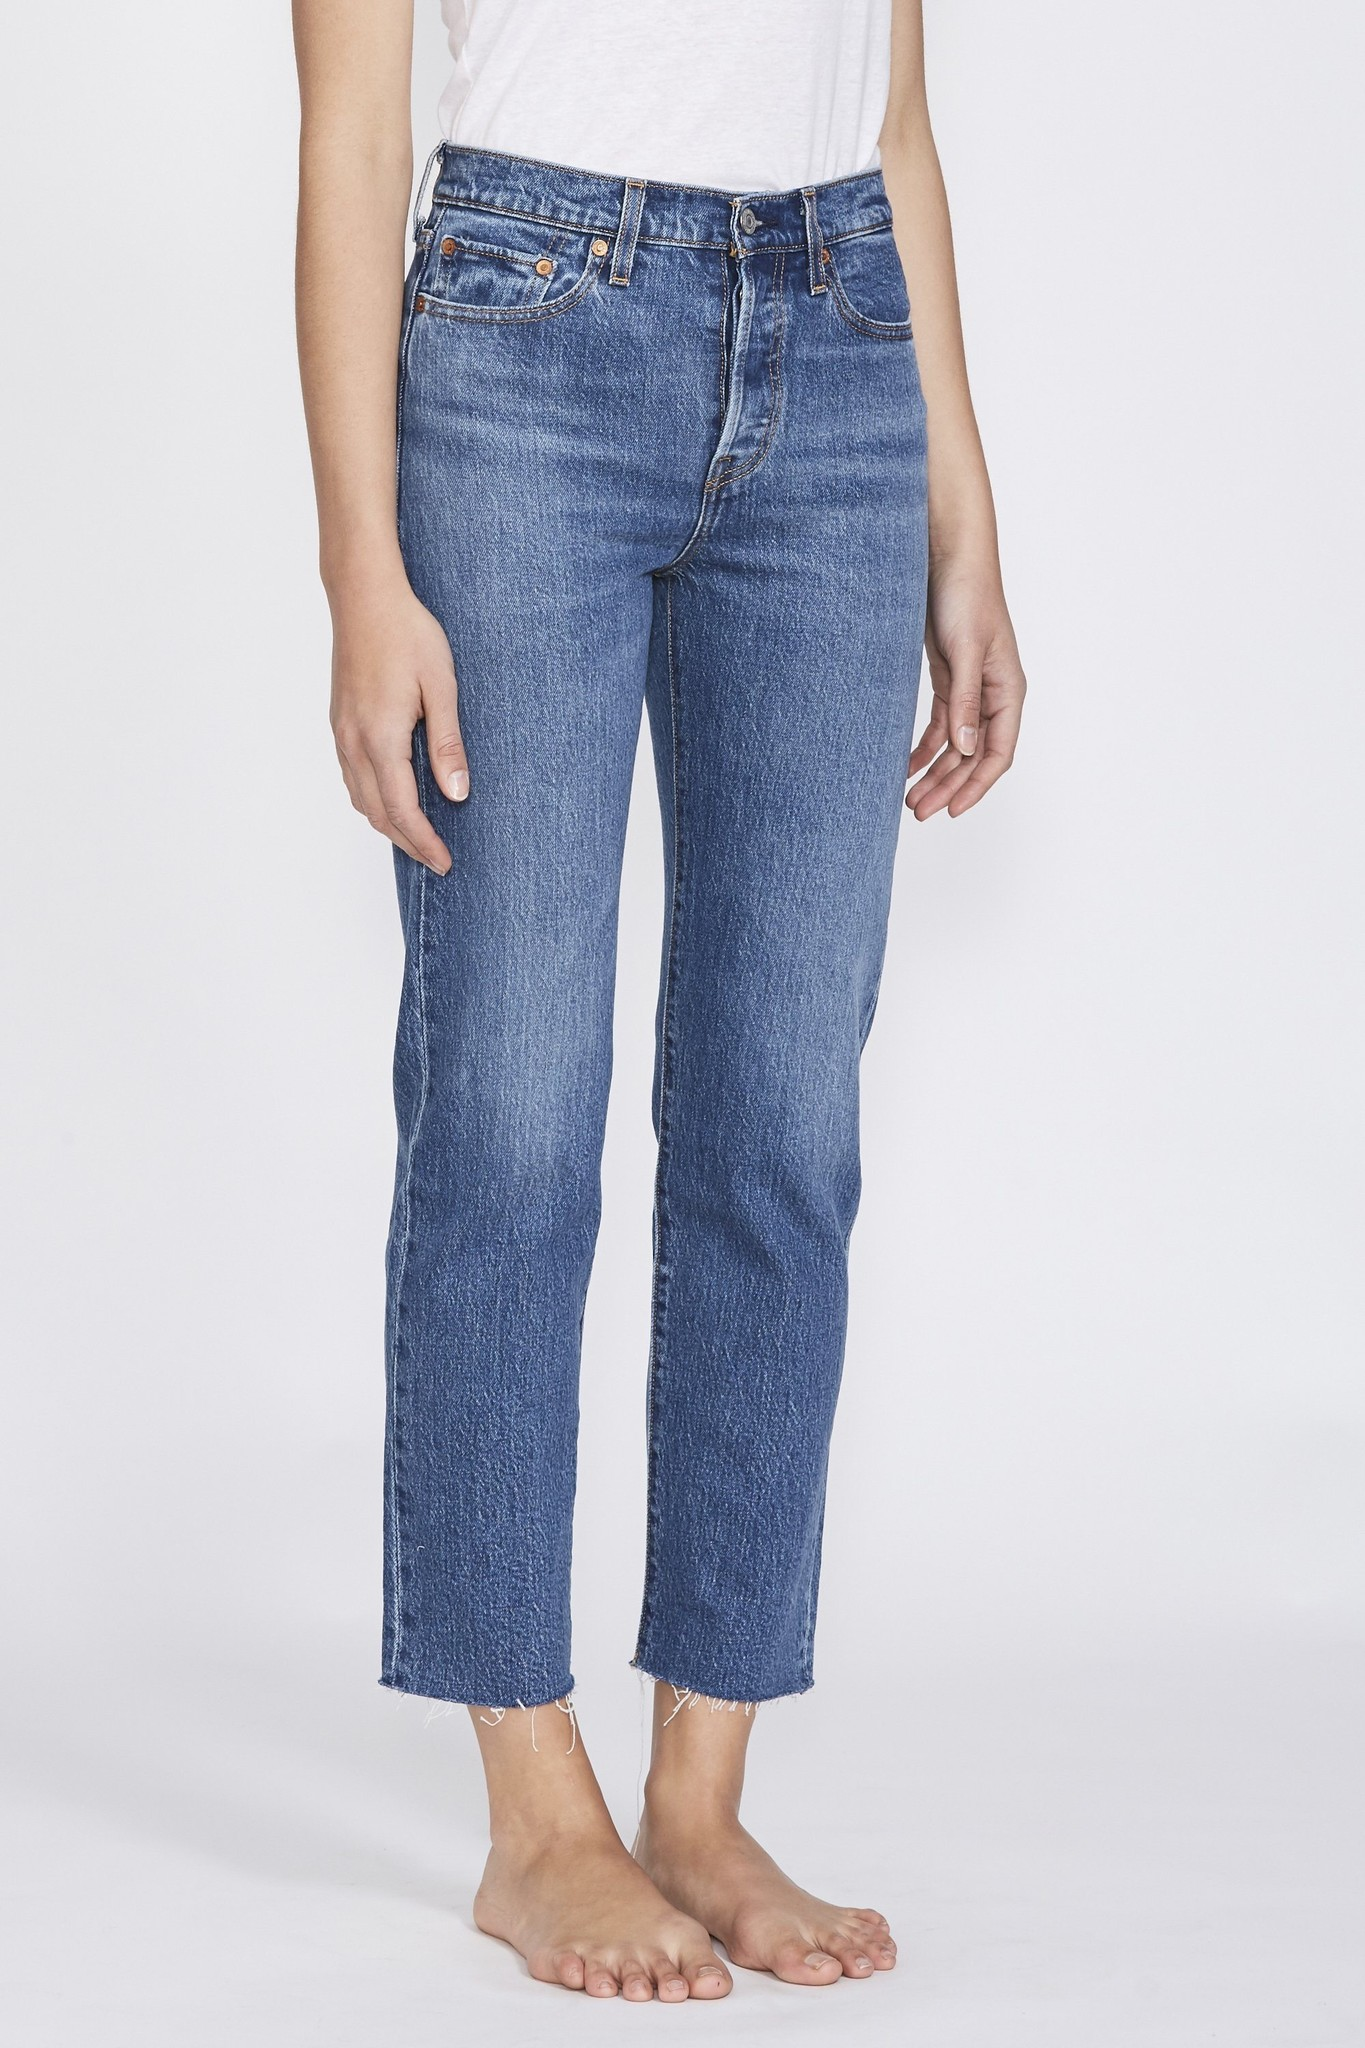 Levi's Wedgie Straight Jean